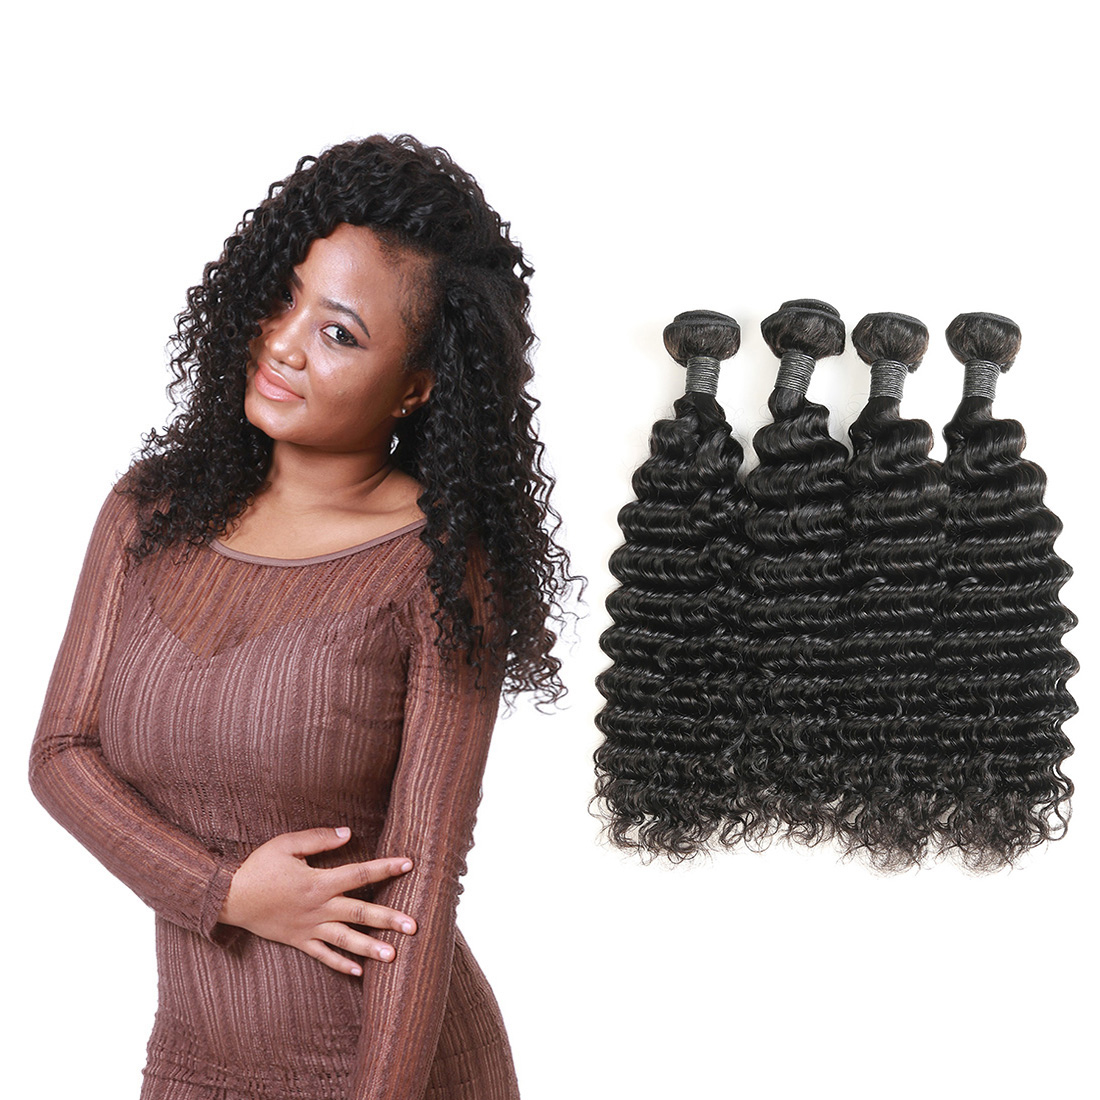 Hot sale stage hair free sample brazilian human hair bundles wholesale in brazil,hot beaut stage double drawn hair